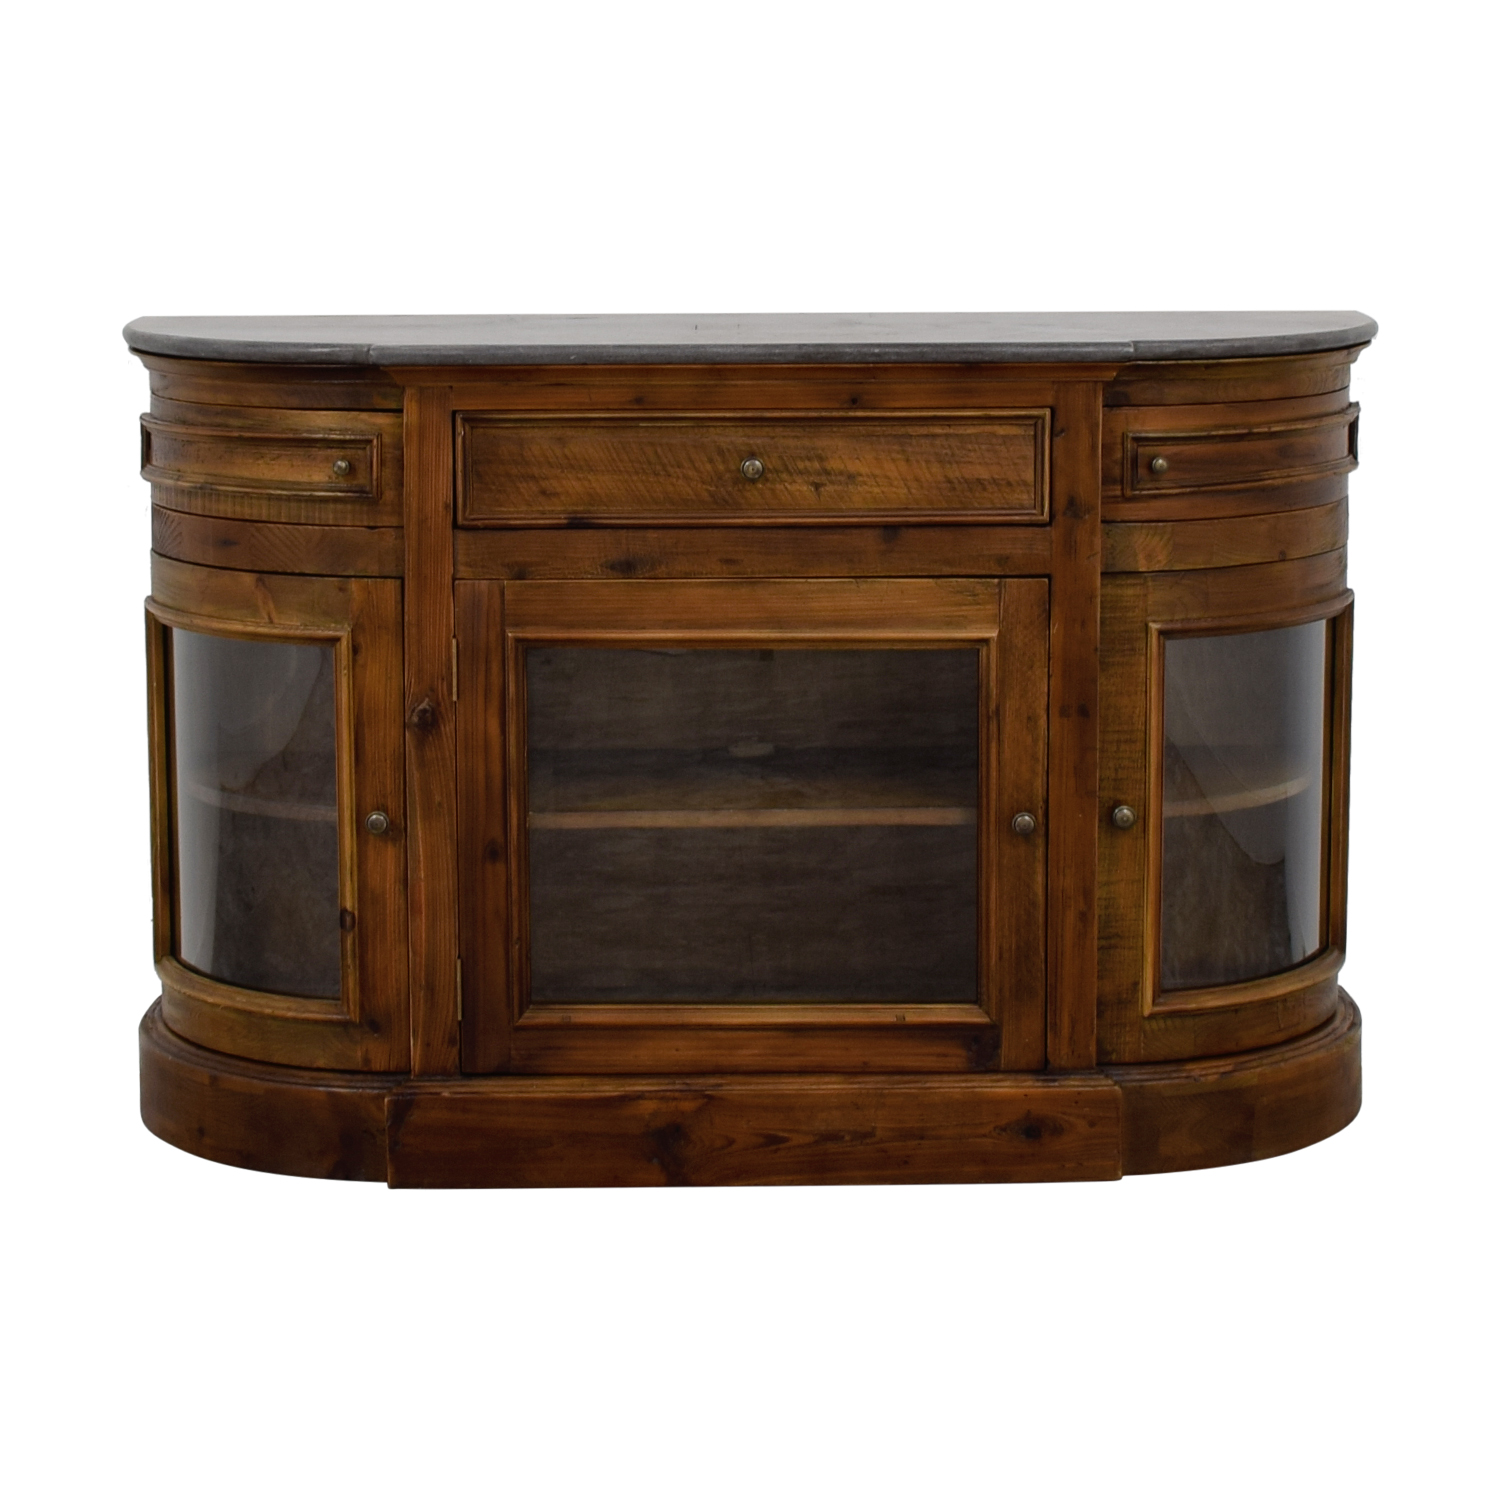 Arhaus Kensington Wood Media Cabinet Arhaus